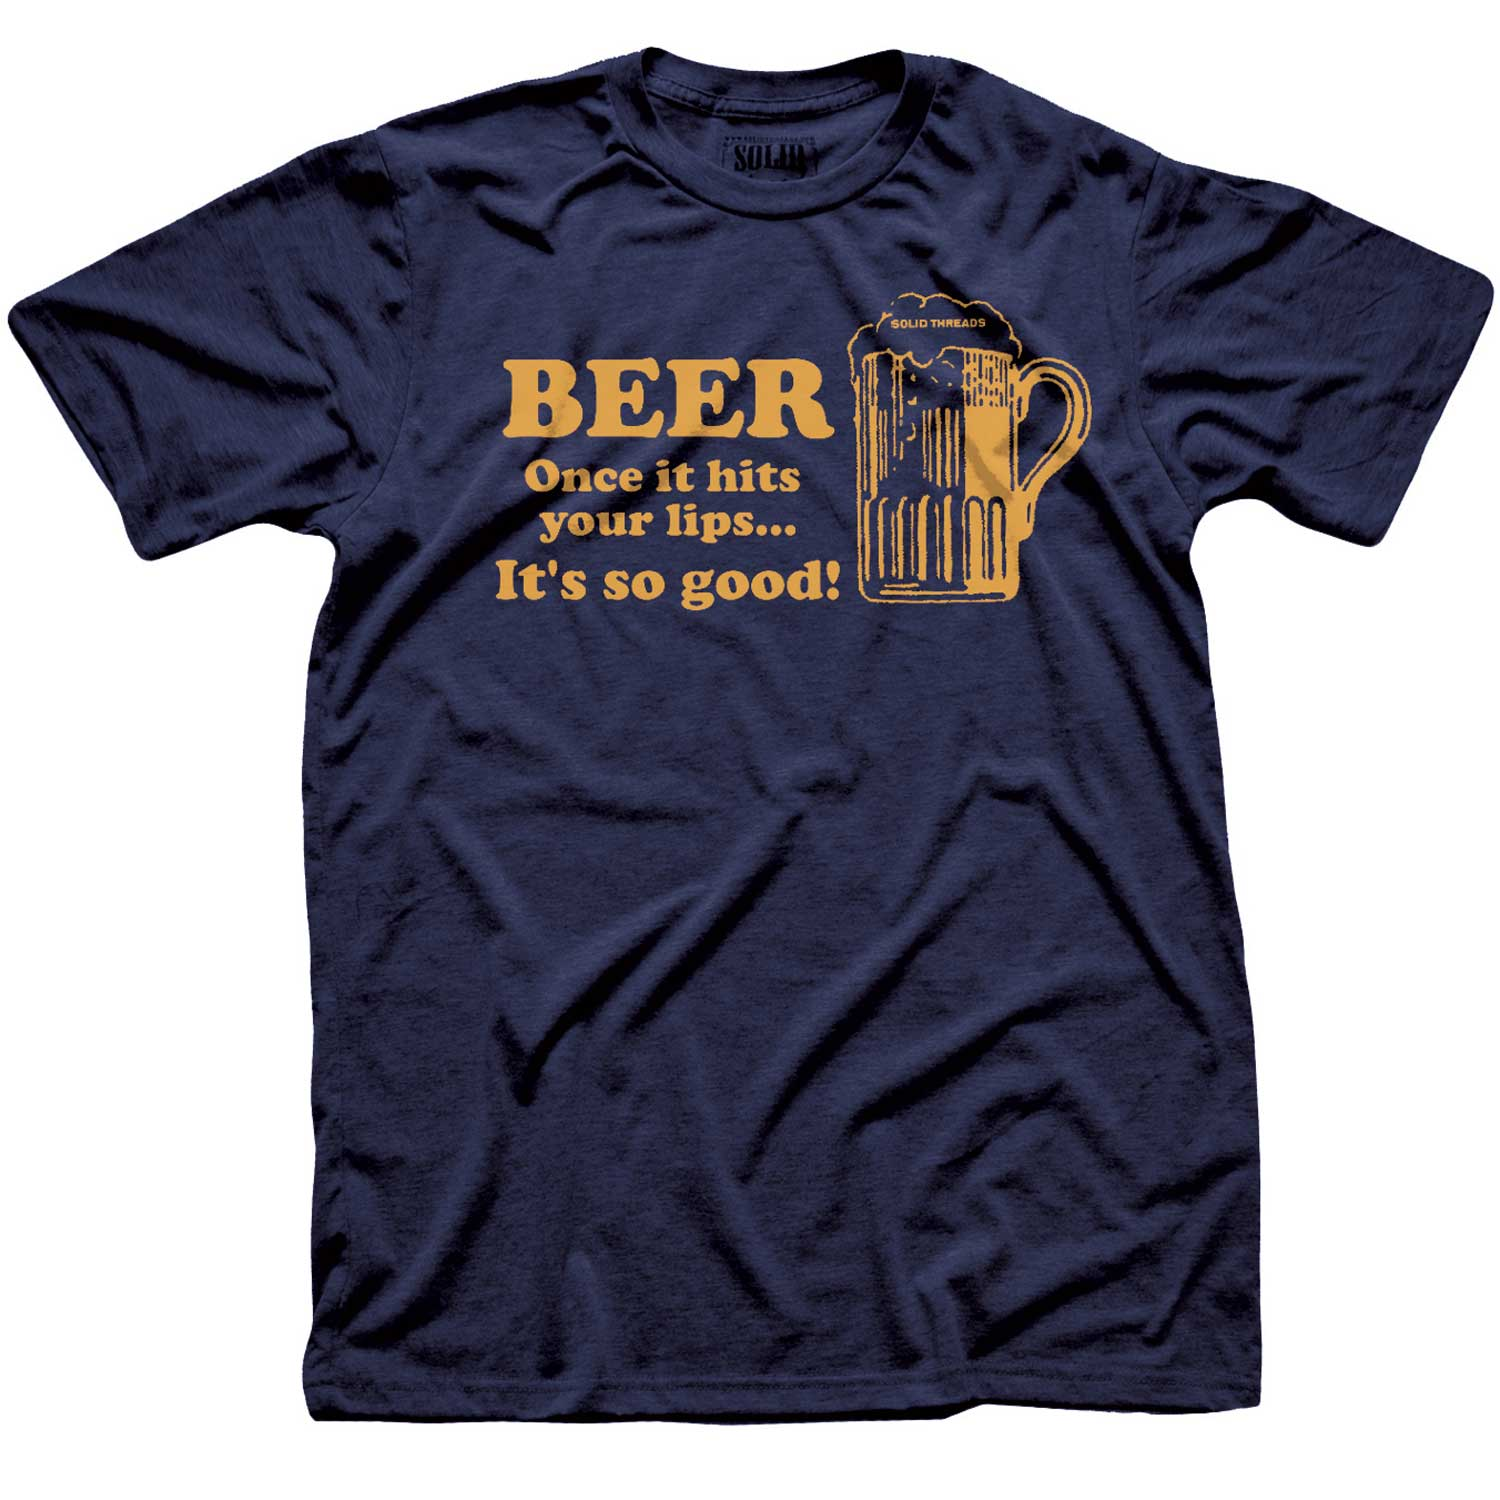 Men's Beer It's So Good When It Hits Your Lips Retro T-shirt | Funny Old School Graphic Tee | Solid Threads